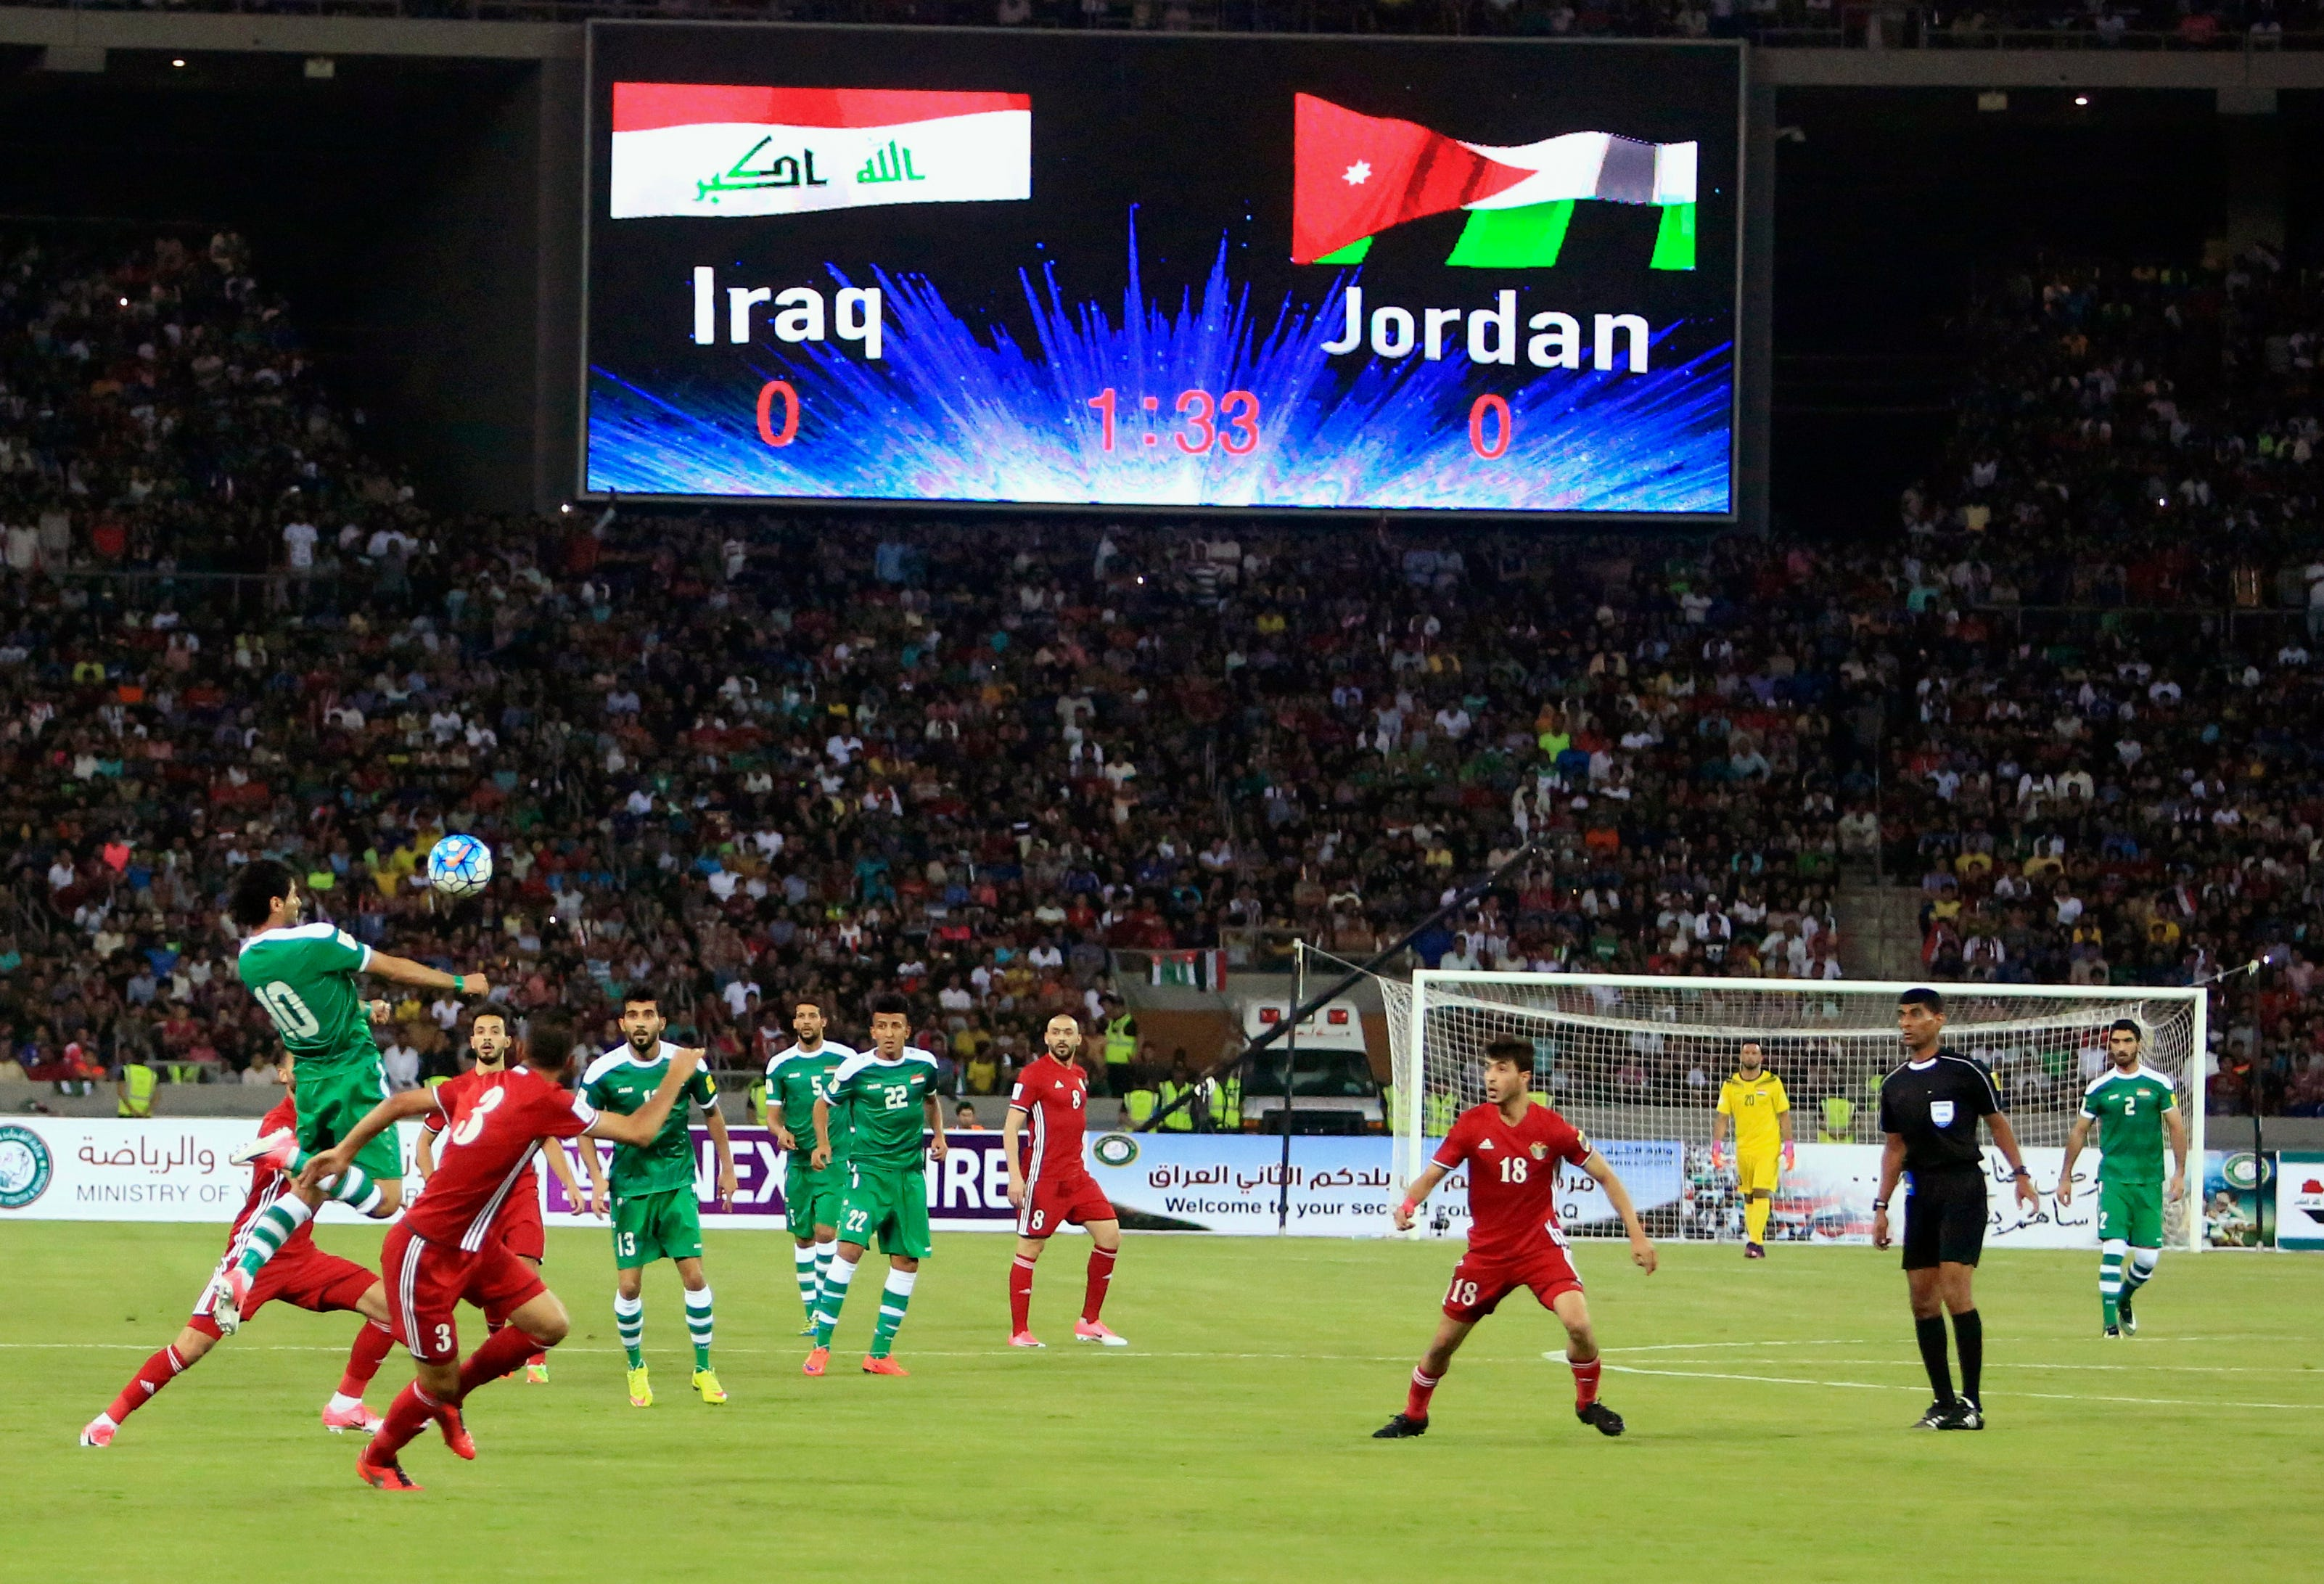 FIFA clears Iraq to host World Cup qualifying games in Basra